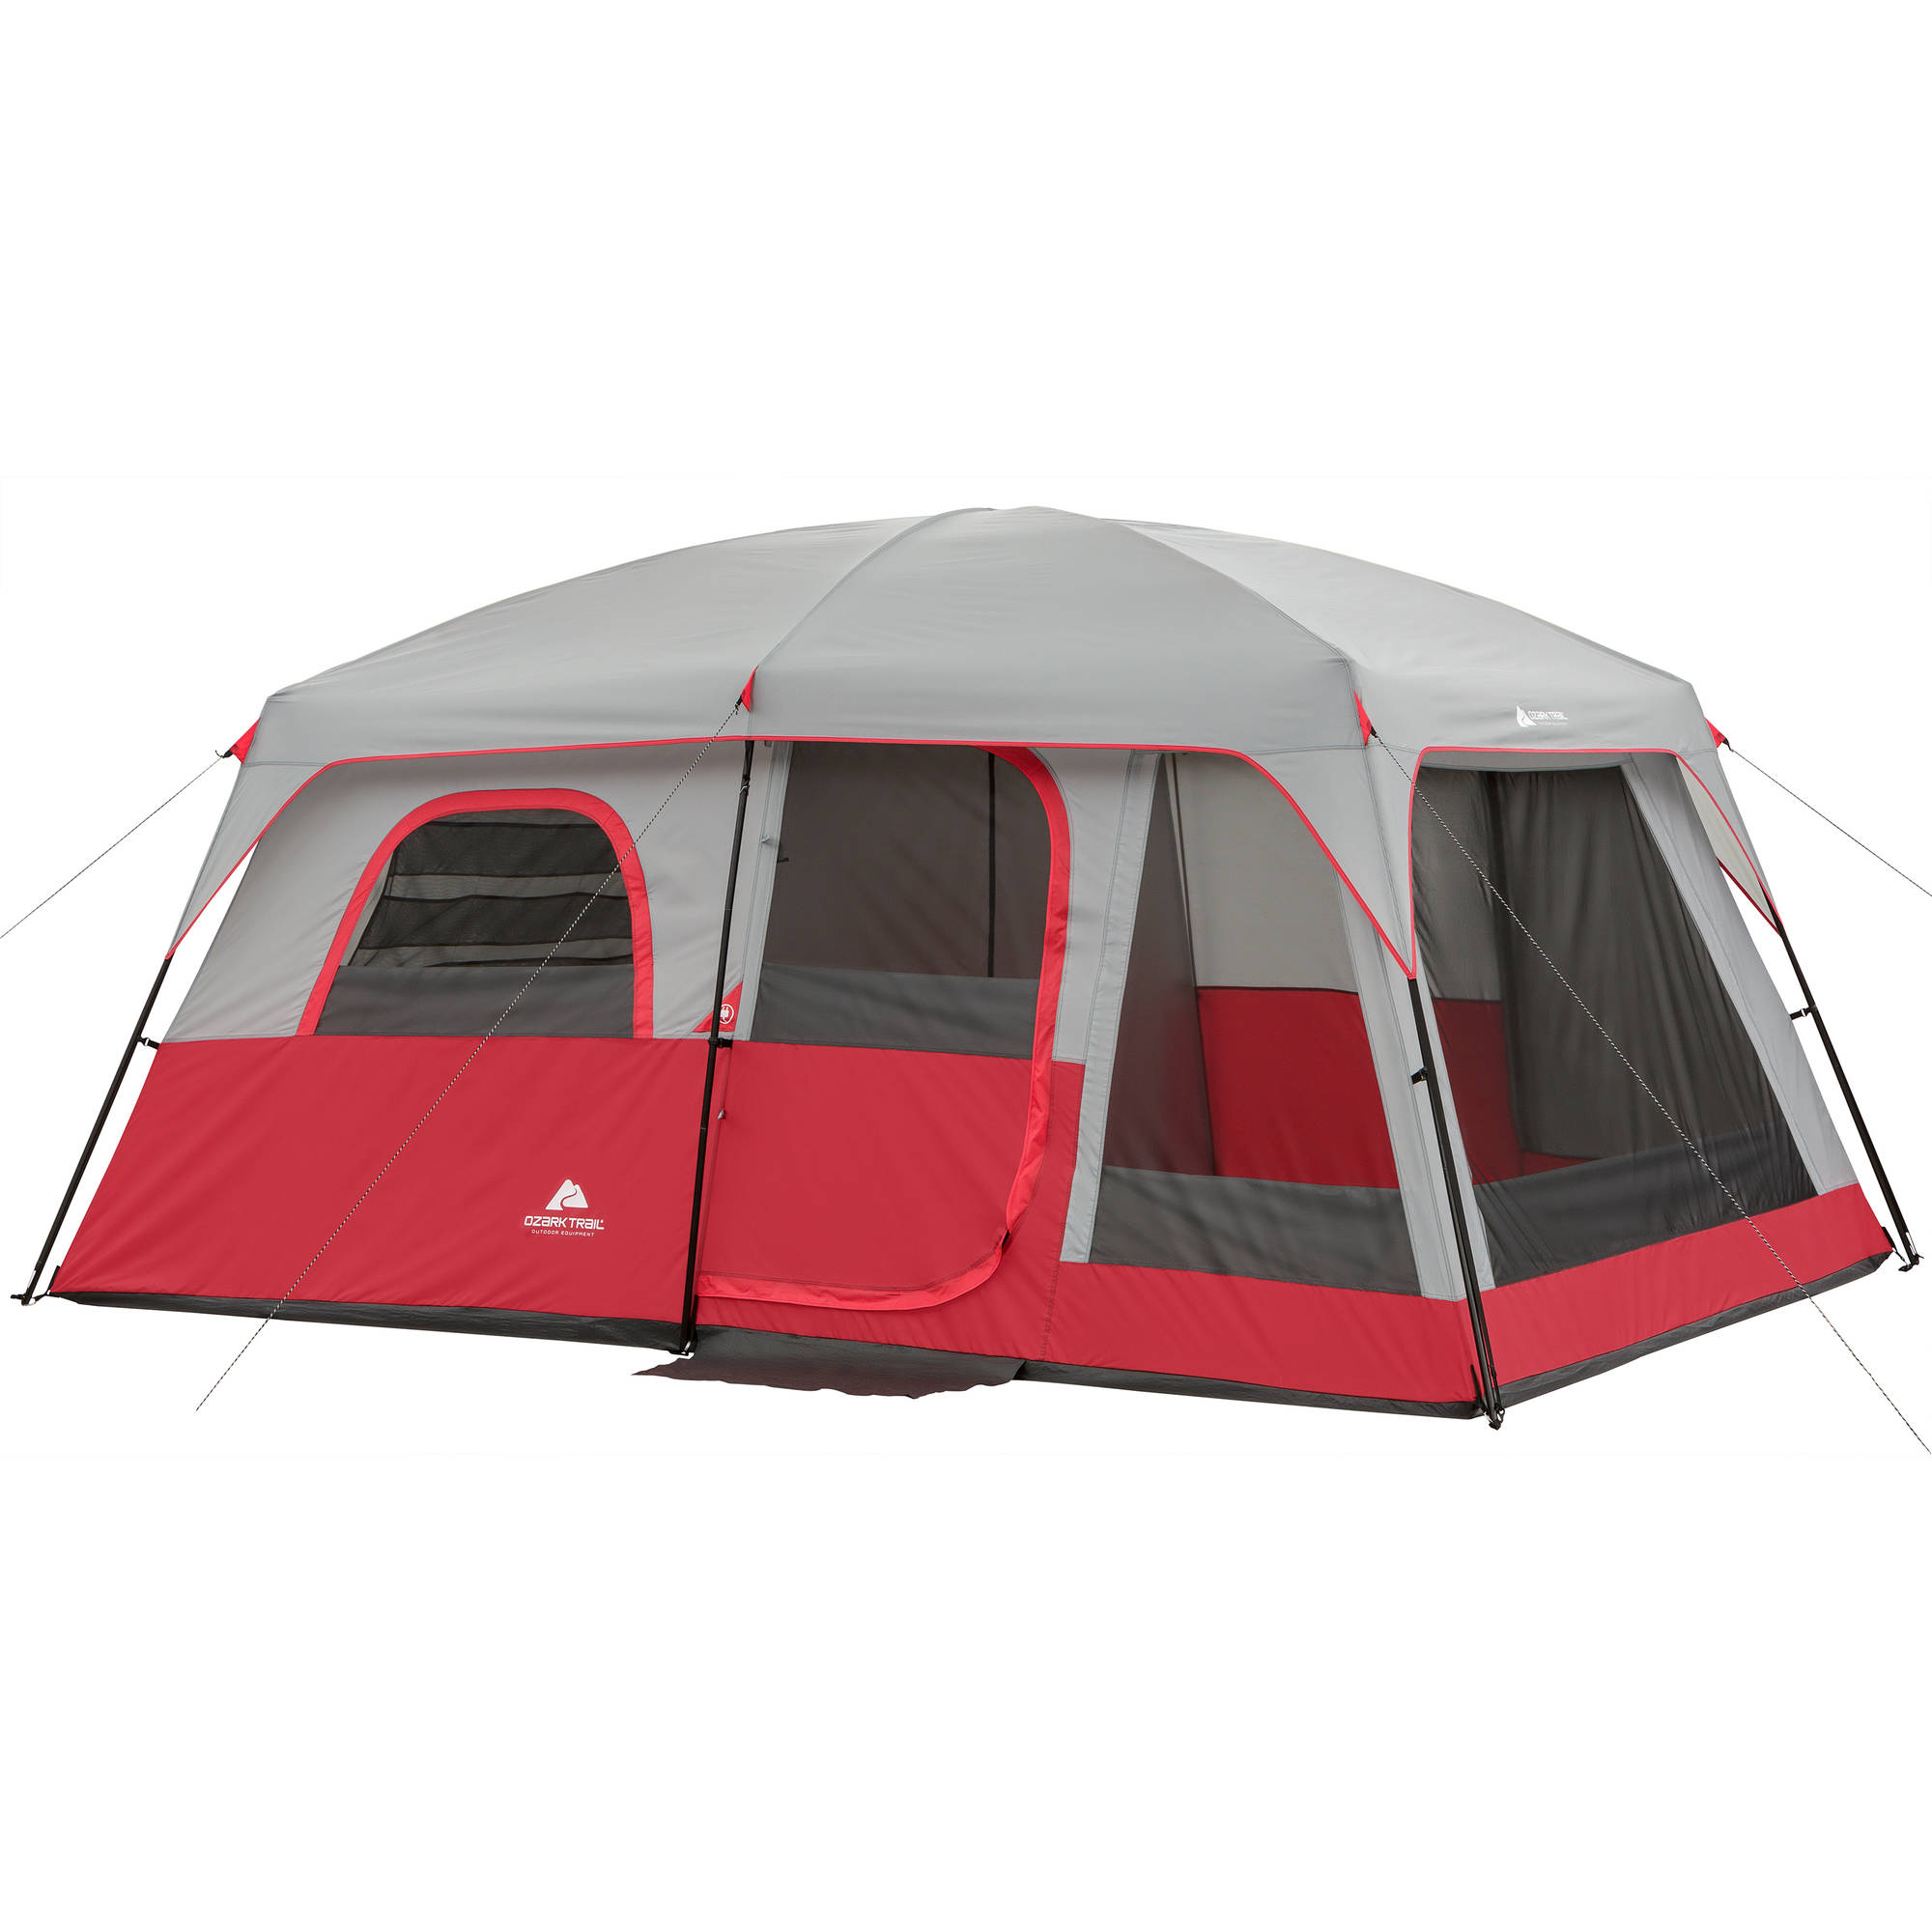 Ozark Trail 10 Person 2 Room Cabin Tent  sc 1 st  Walmart.com & Ozark Trail 10 Person 2 Room Cabin Tent - Walmart.com